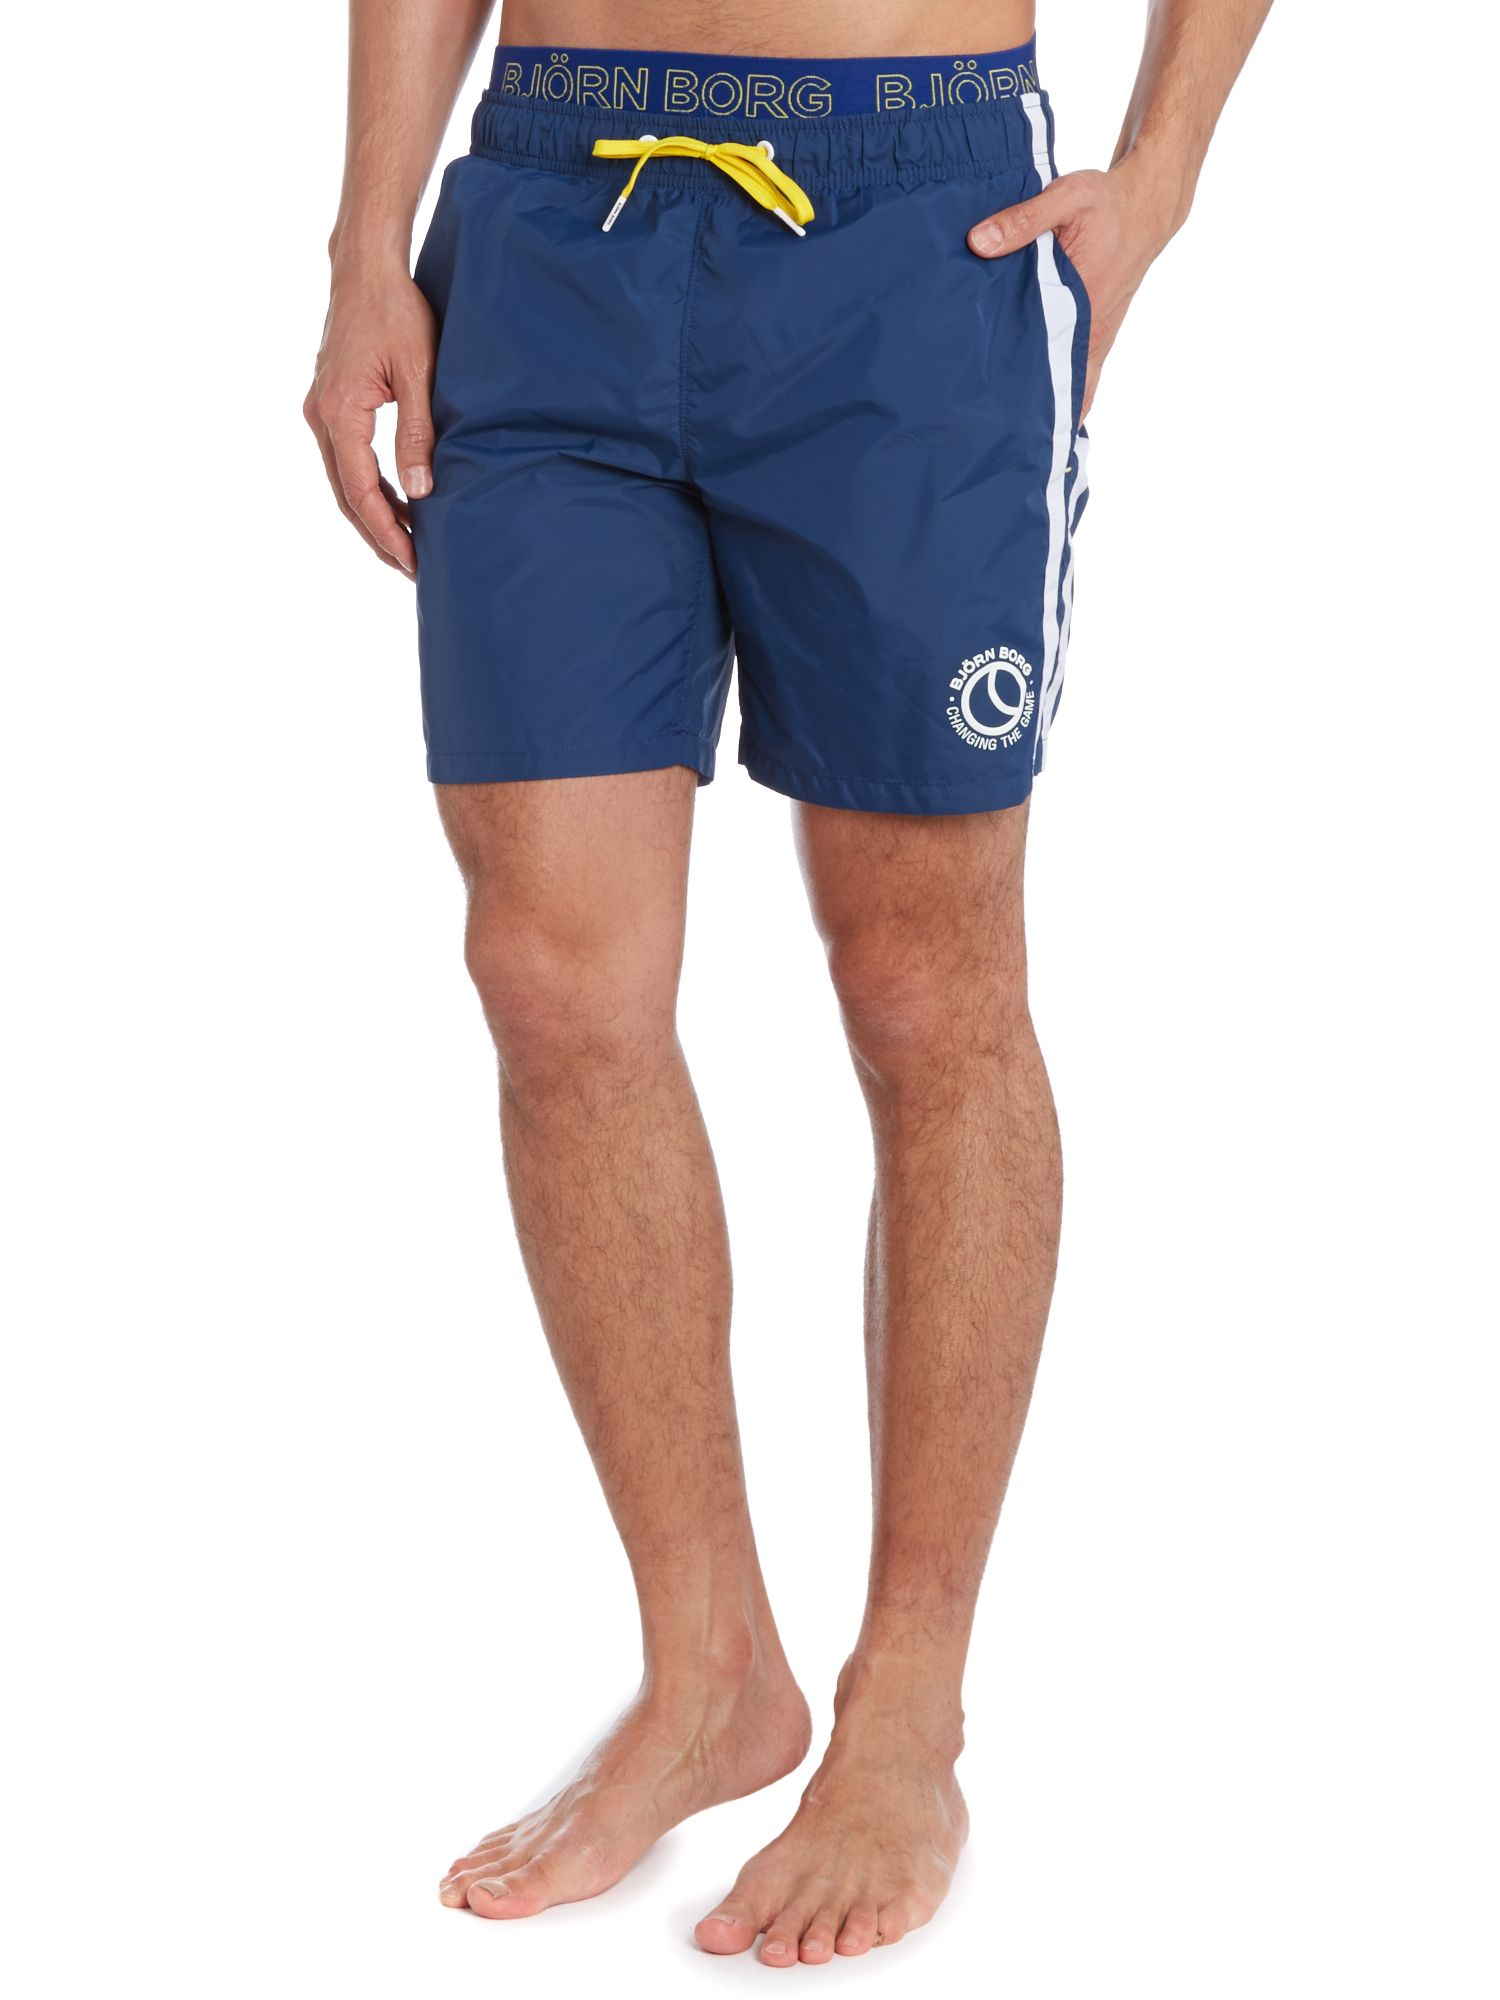 Classic long swim short